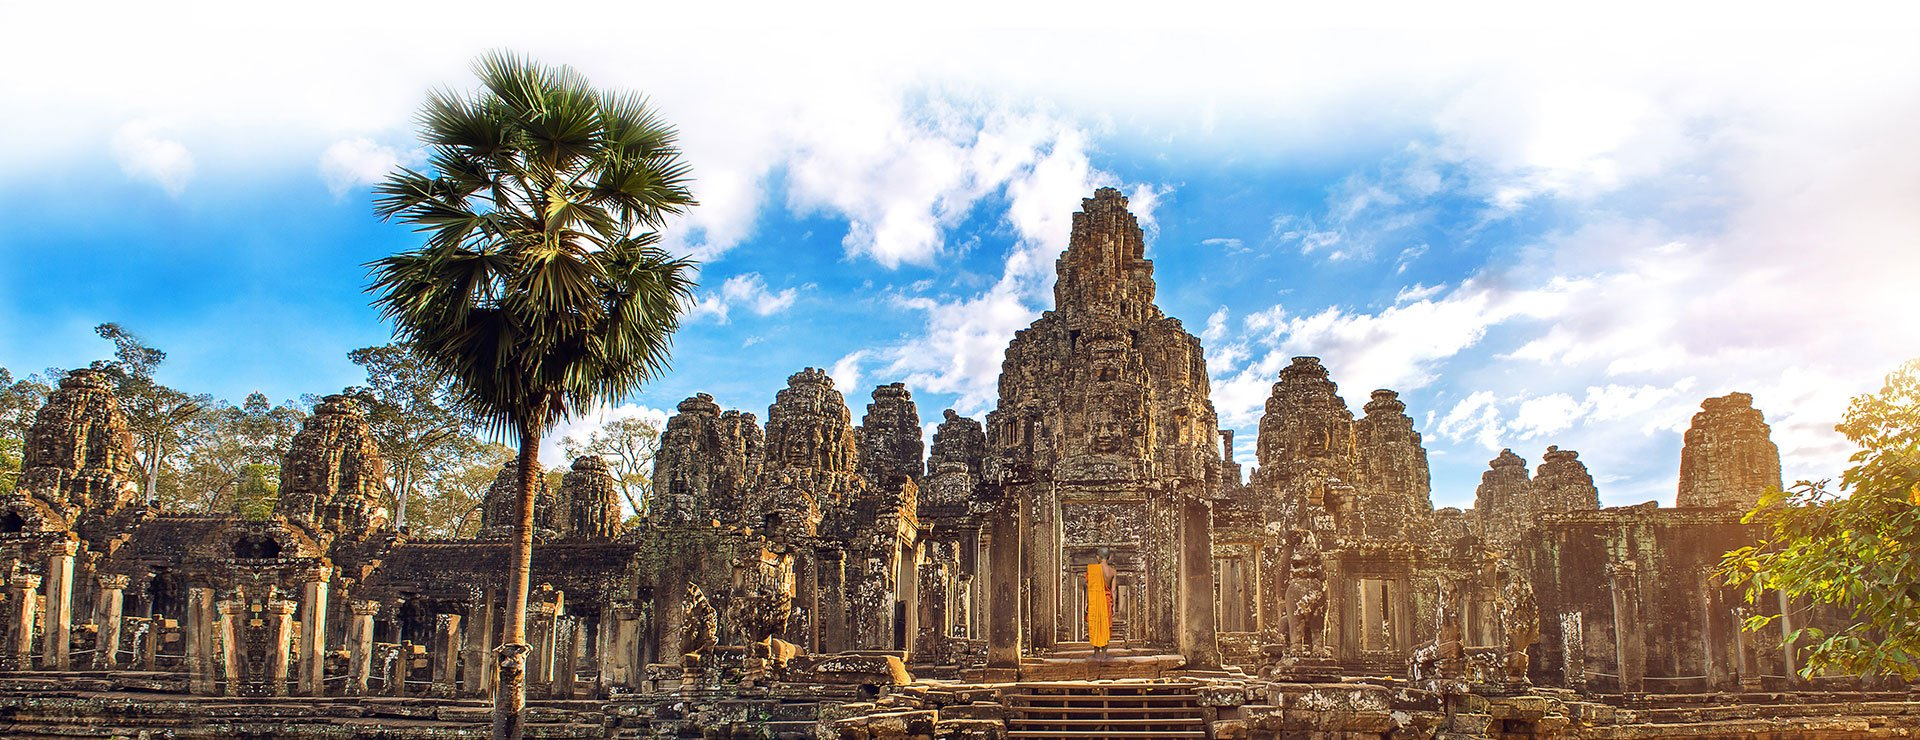 Travel to Cambodia: What should be put on your must-do list?